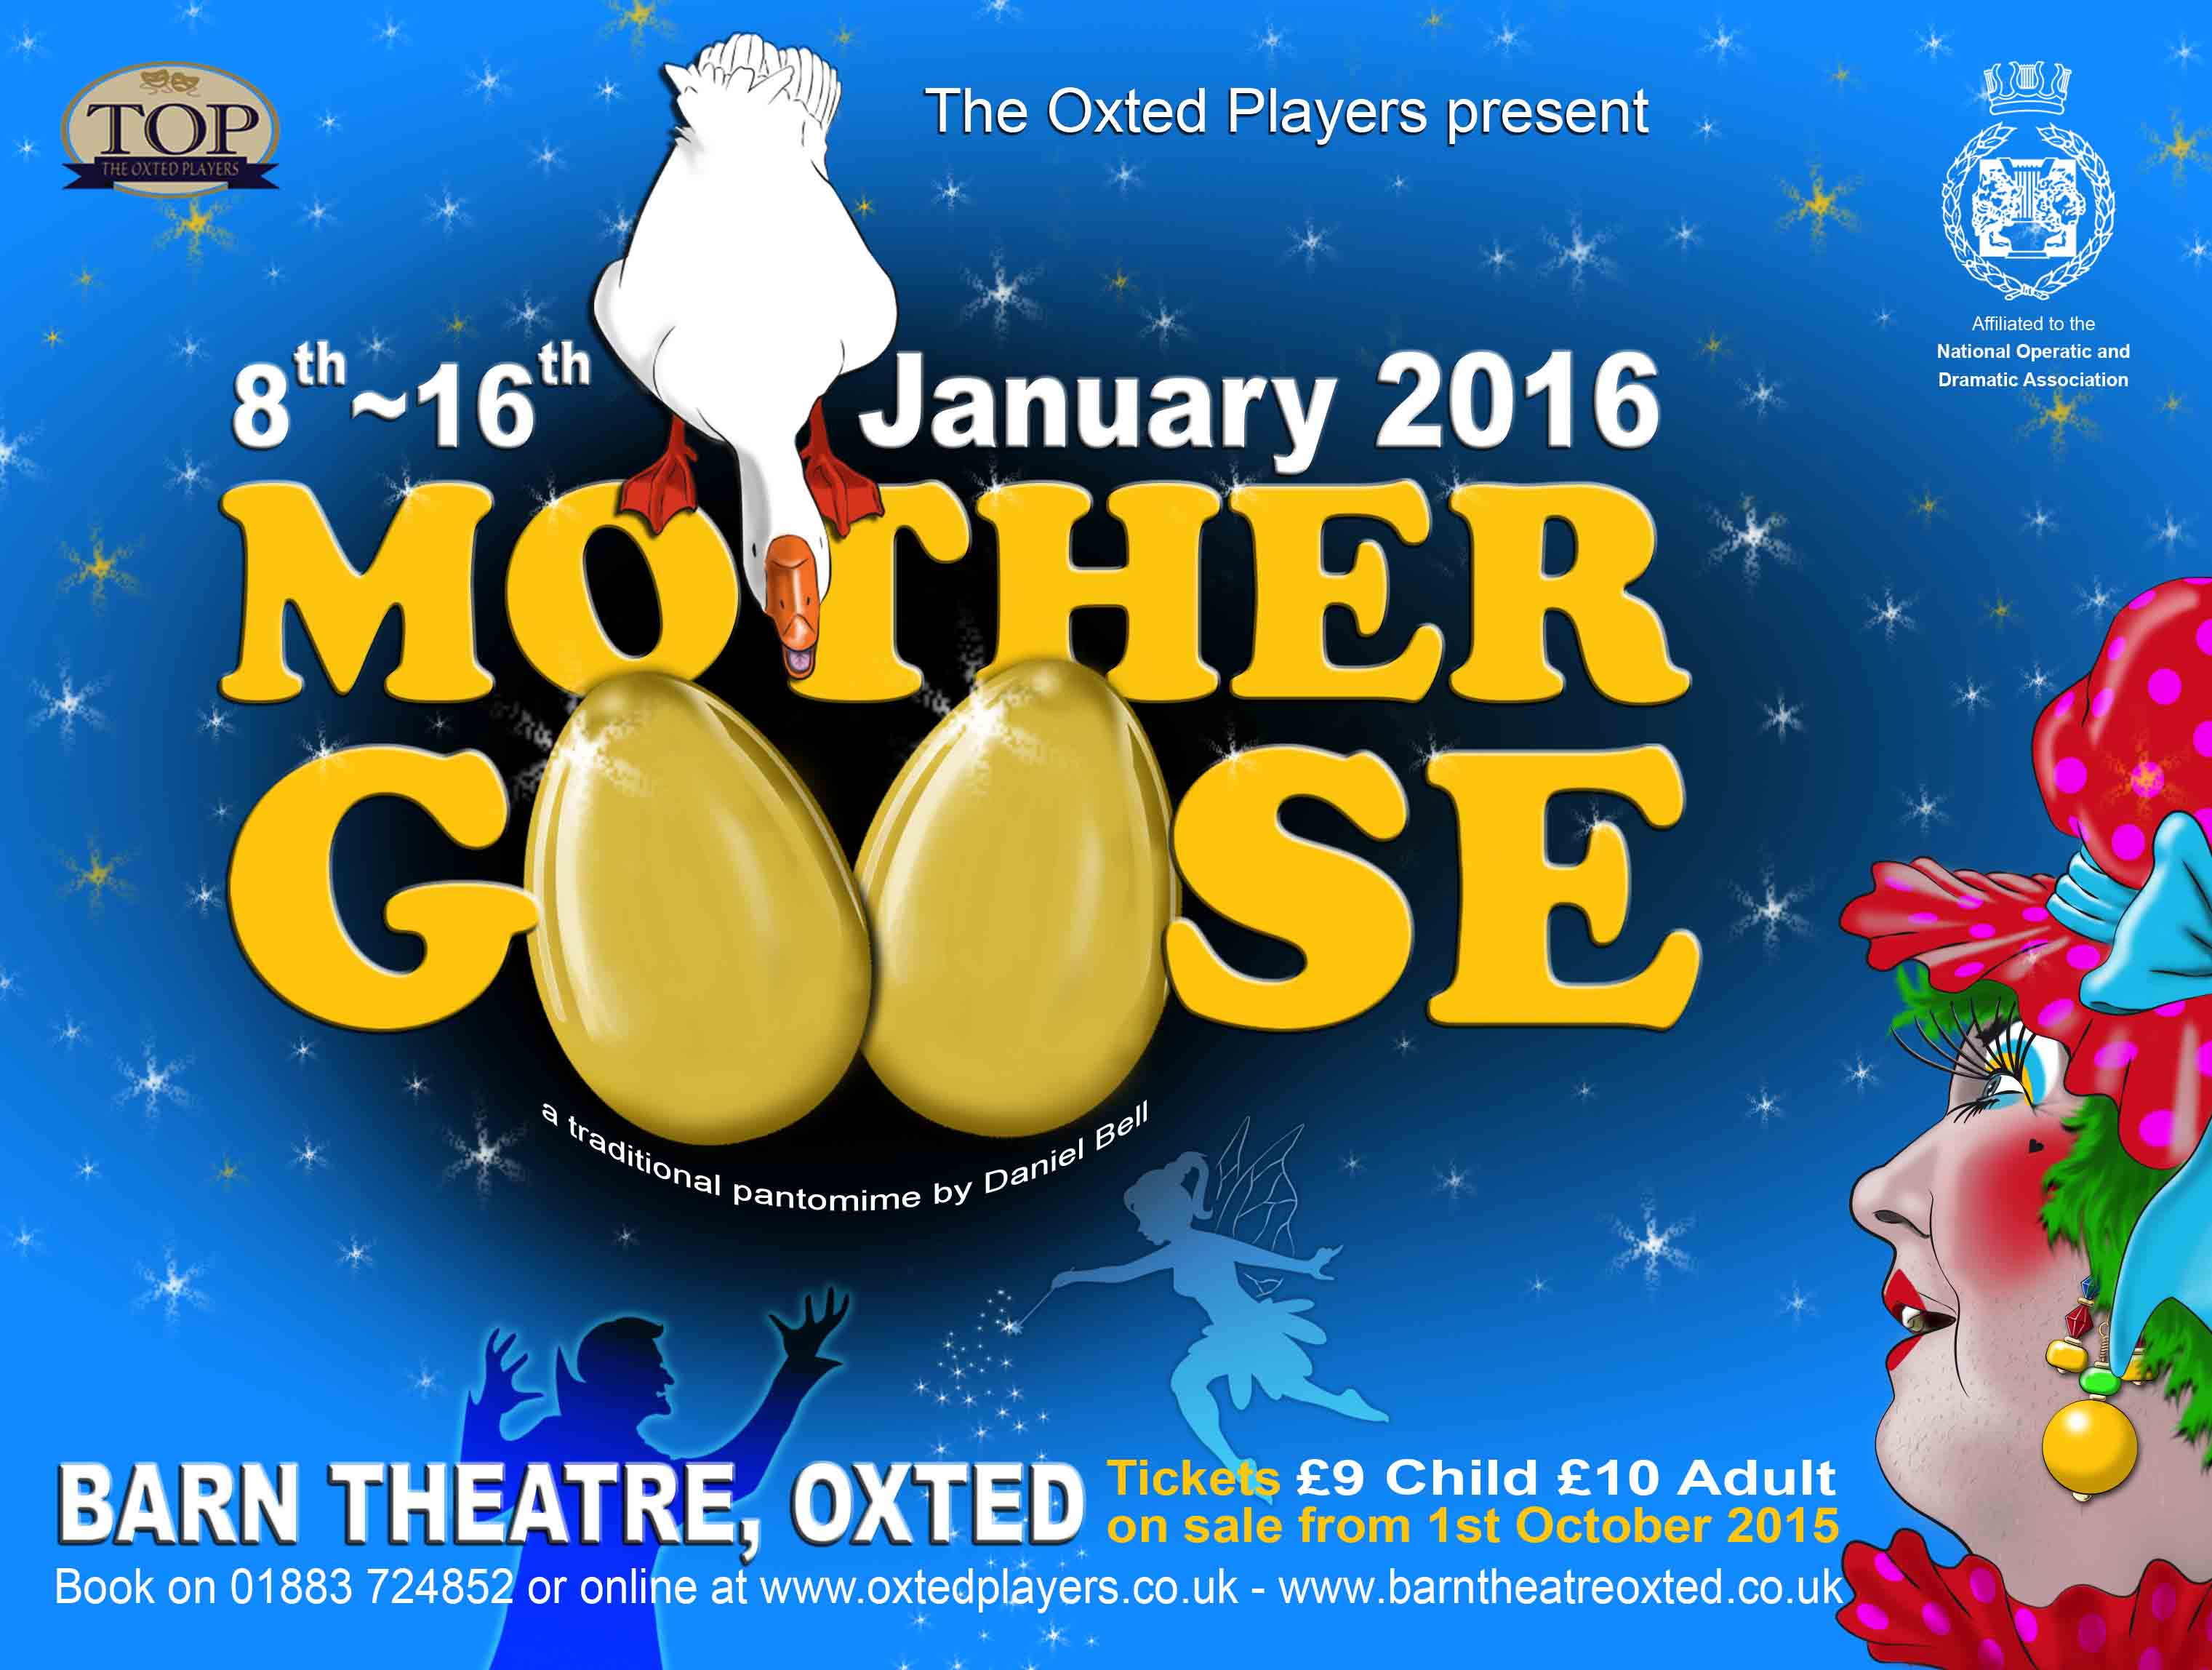 Mother Goose at The Barn Theatre event tickets from TicketSource